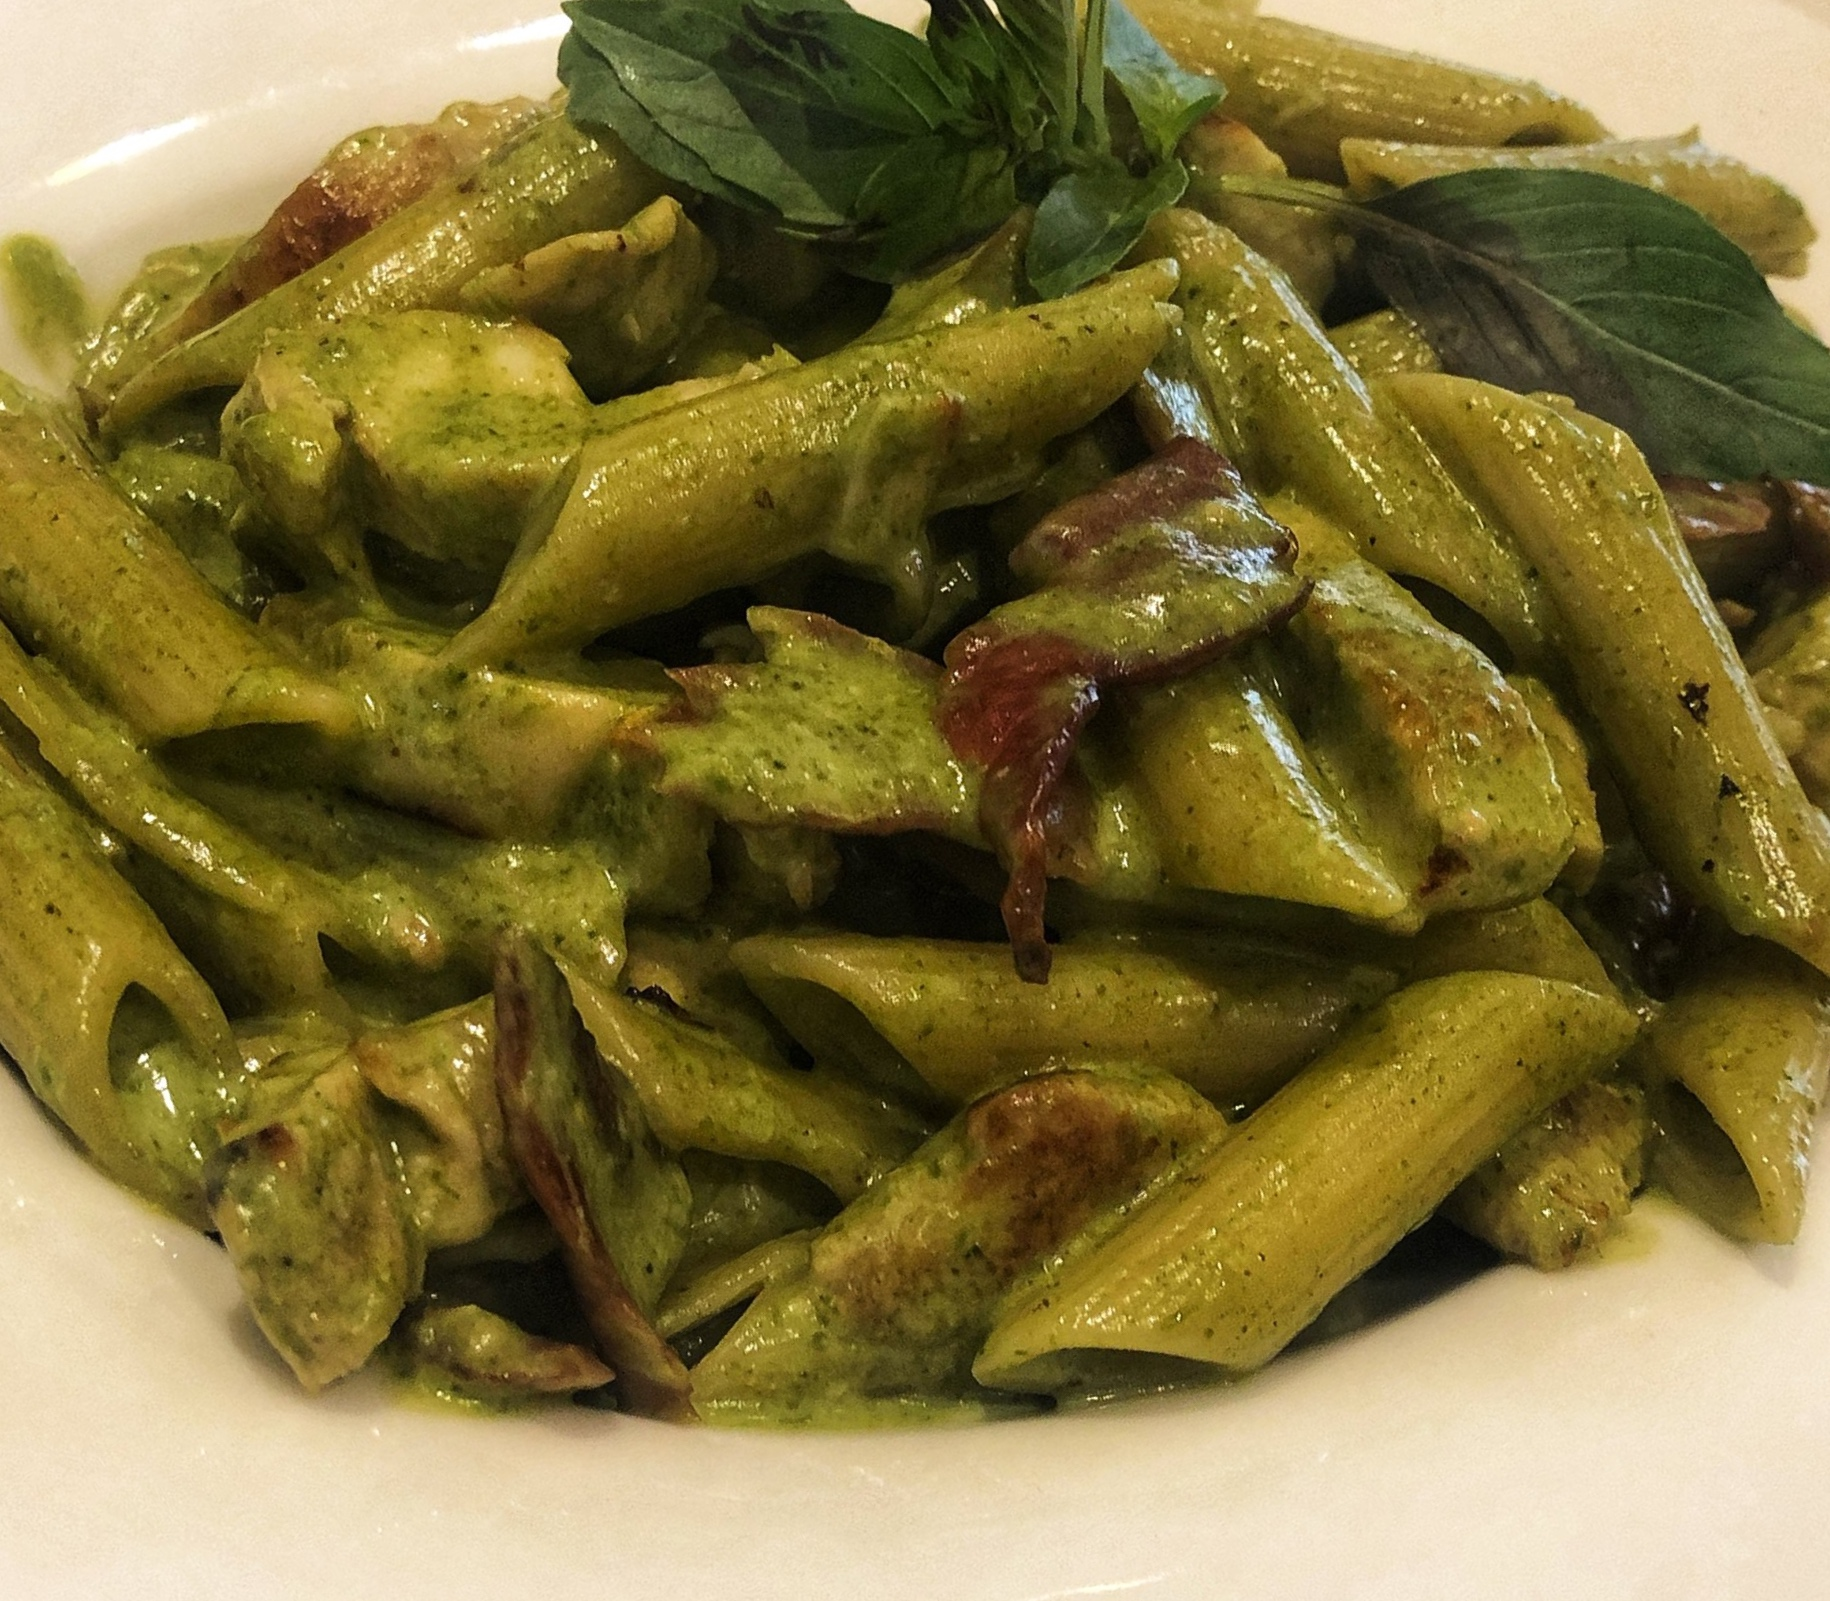 Chicken Pesto Pasta at Craft Gourmet